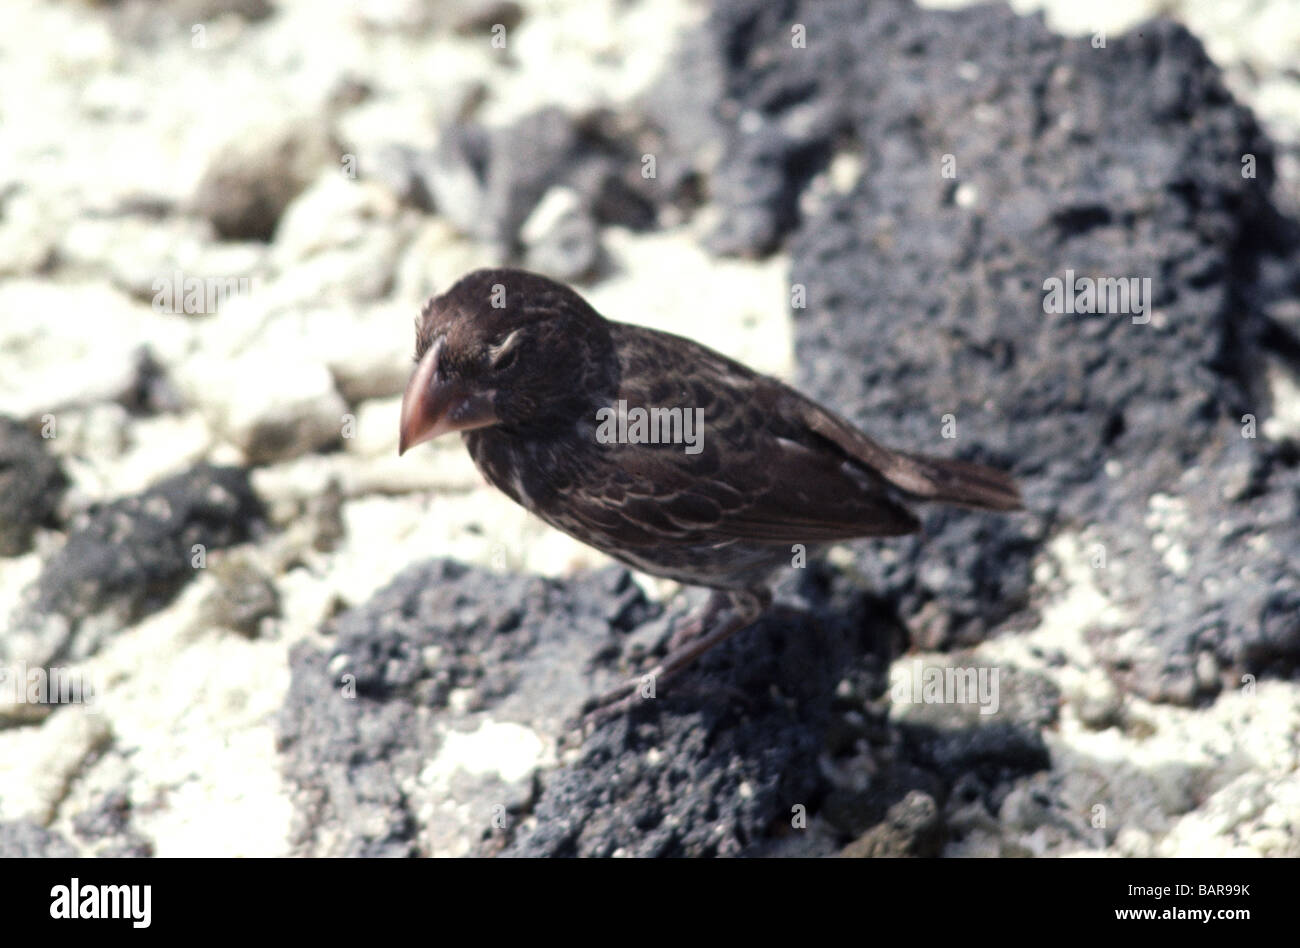 Galapagos Islands. Large Ground Finch. Adult female on Tower Island. - Stock Image